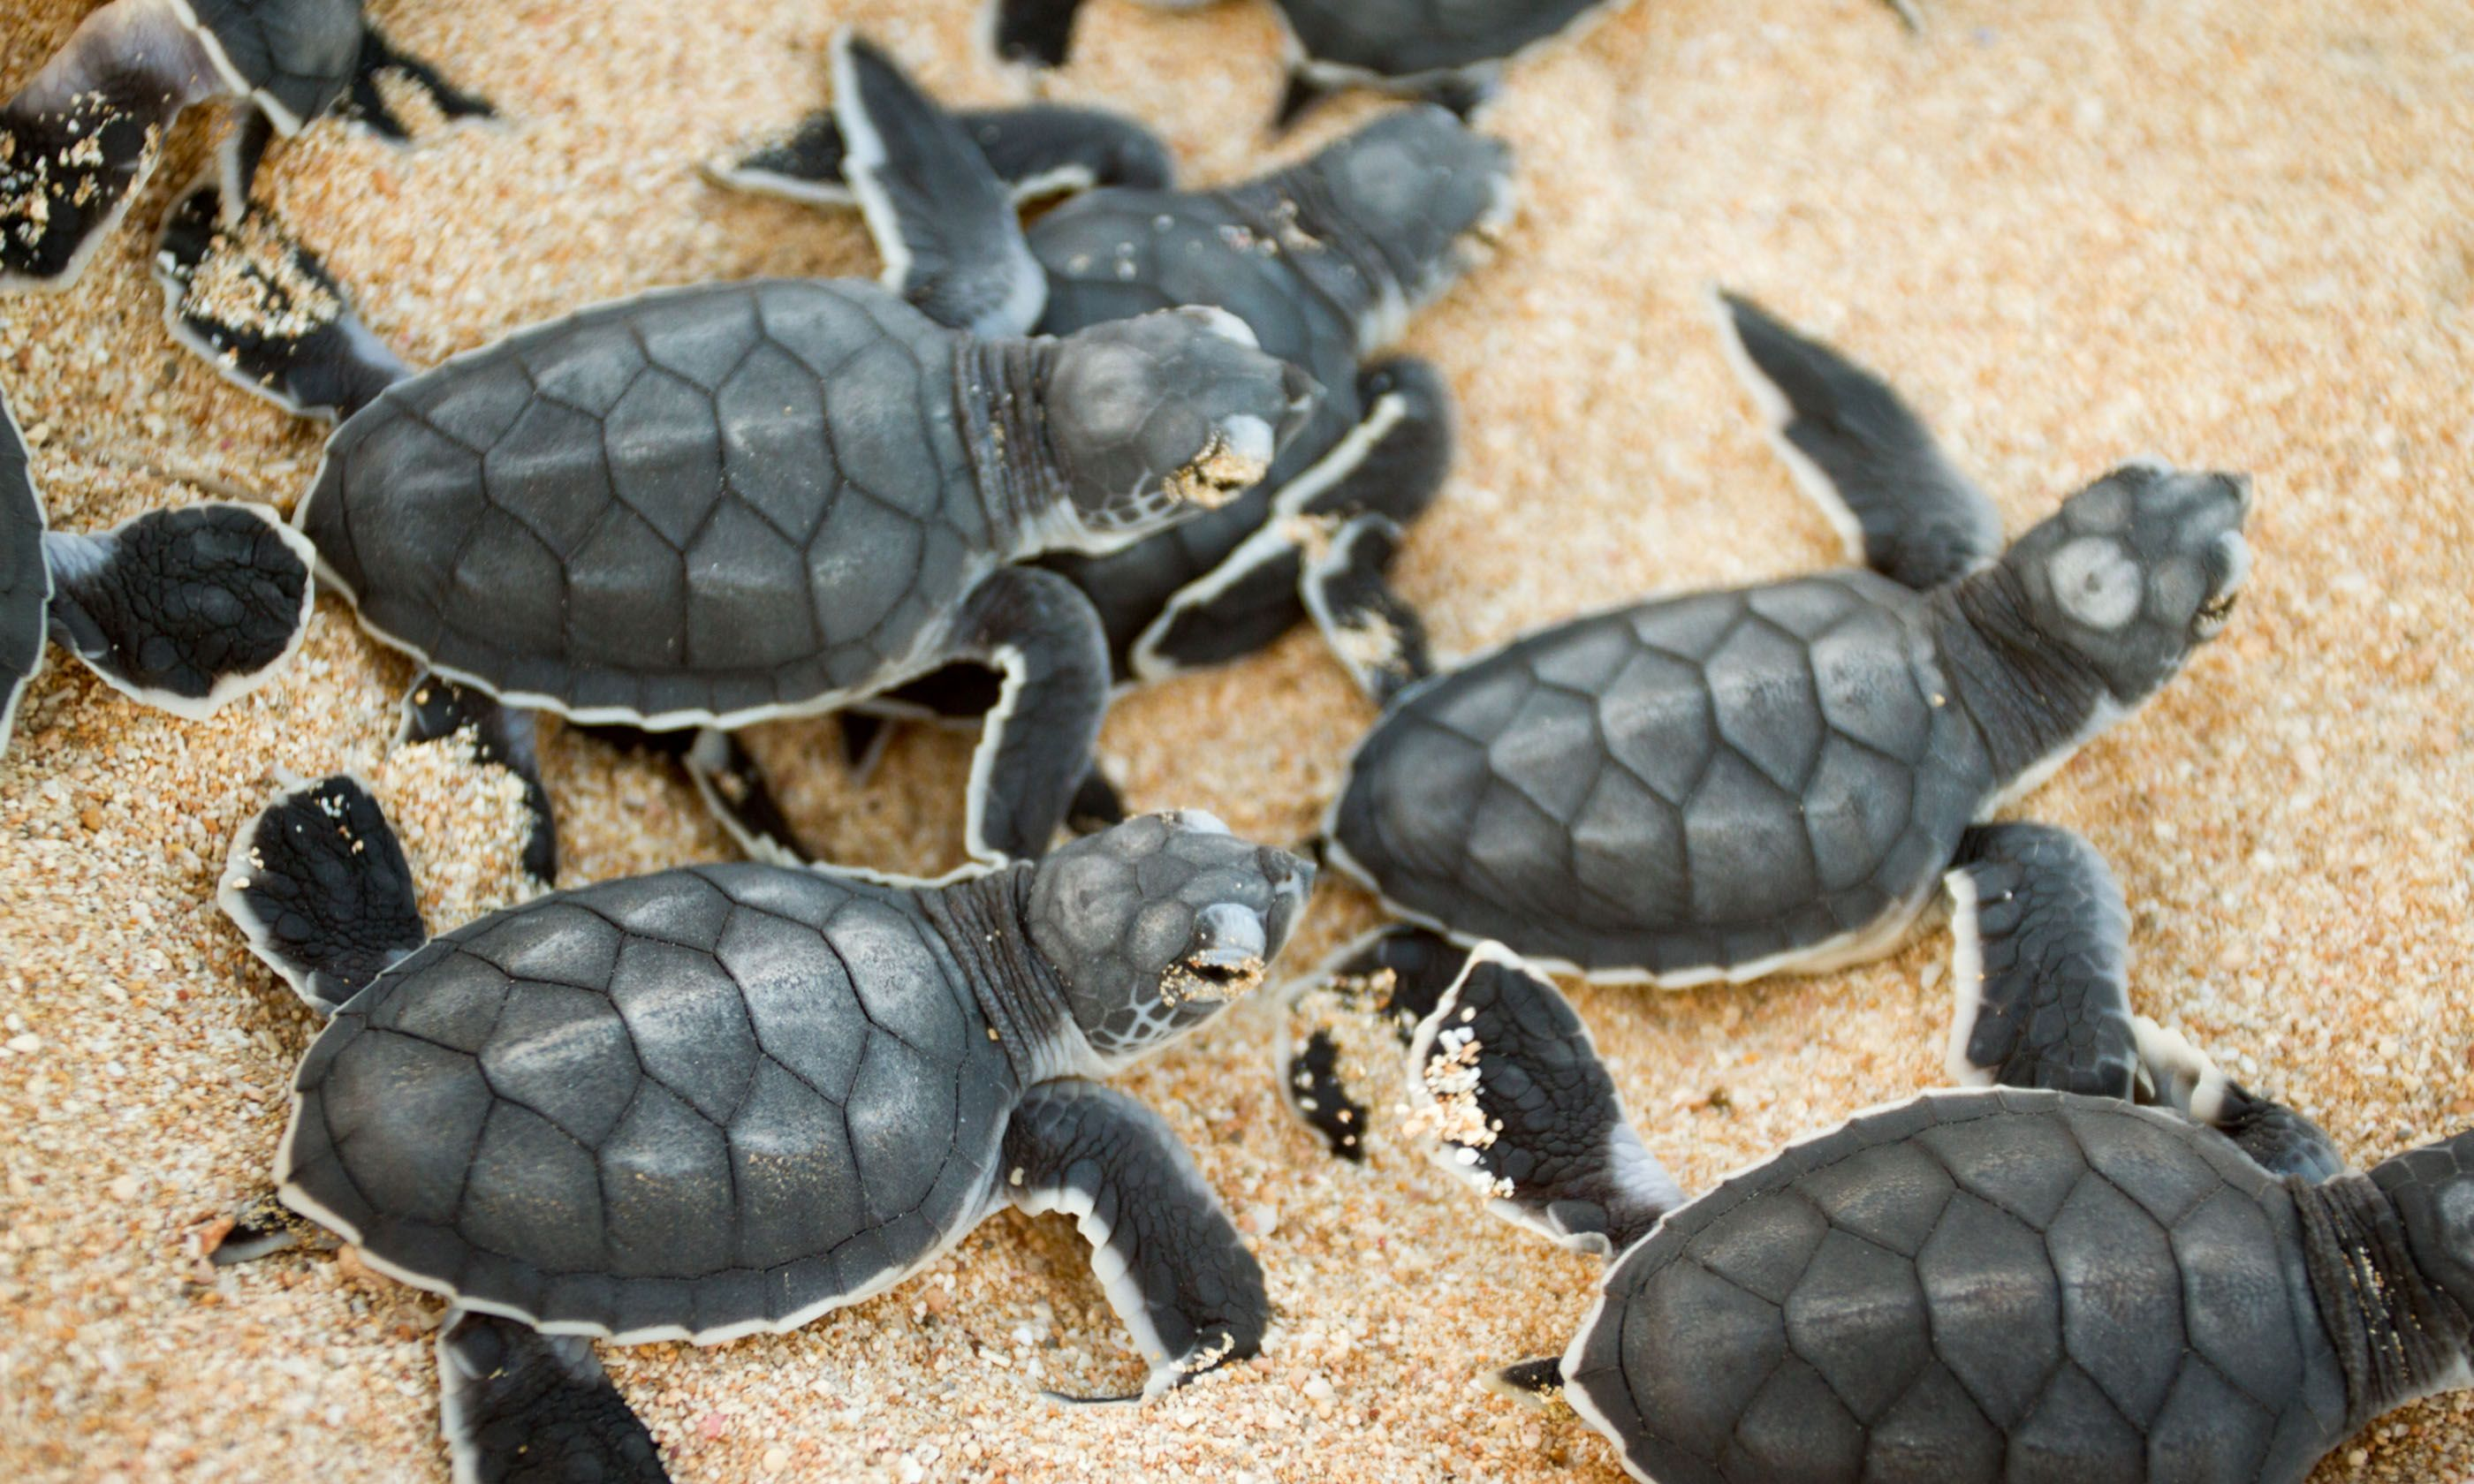 Turtle hatchlings (Dreamstime)